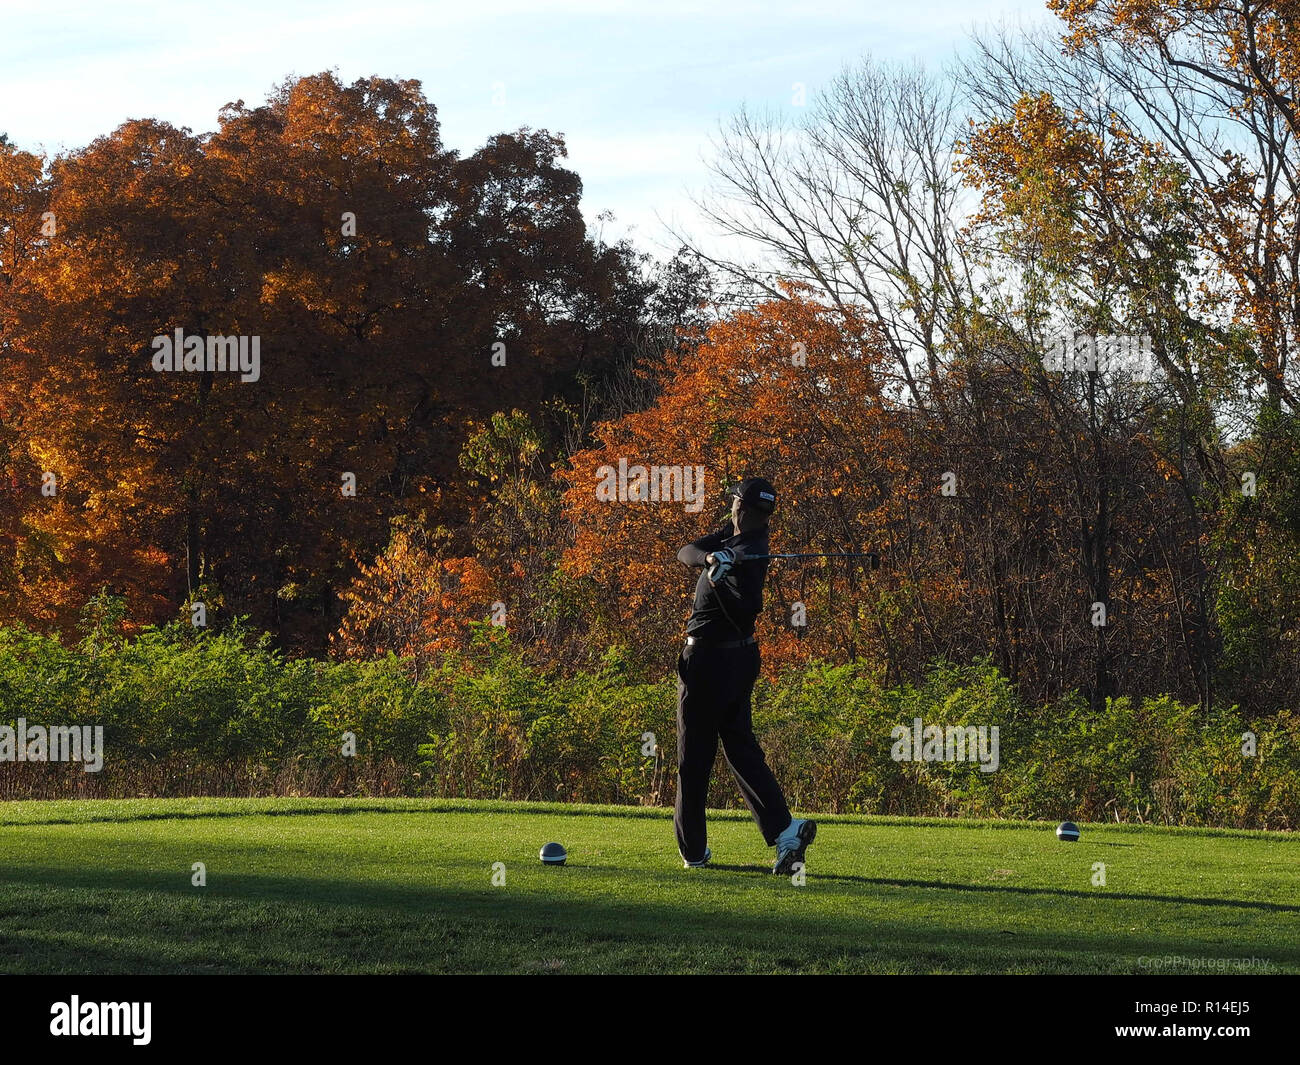 Golfer follow though swing on tee box in the fall - Stock Image